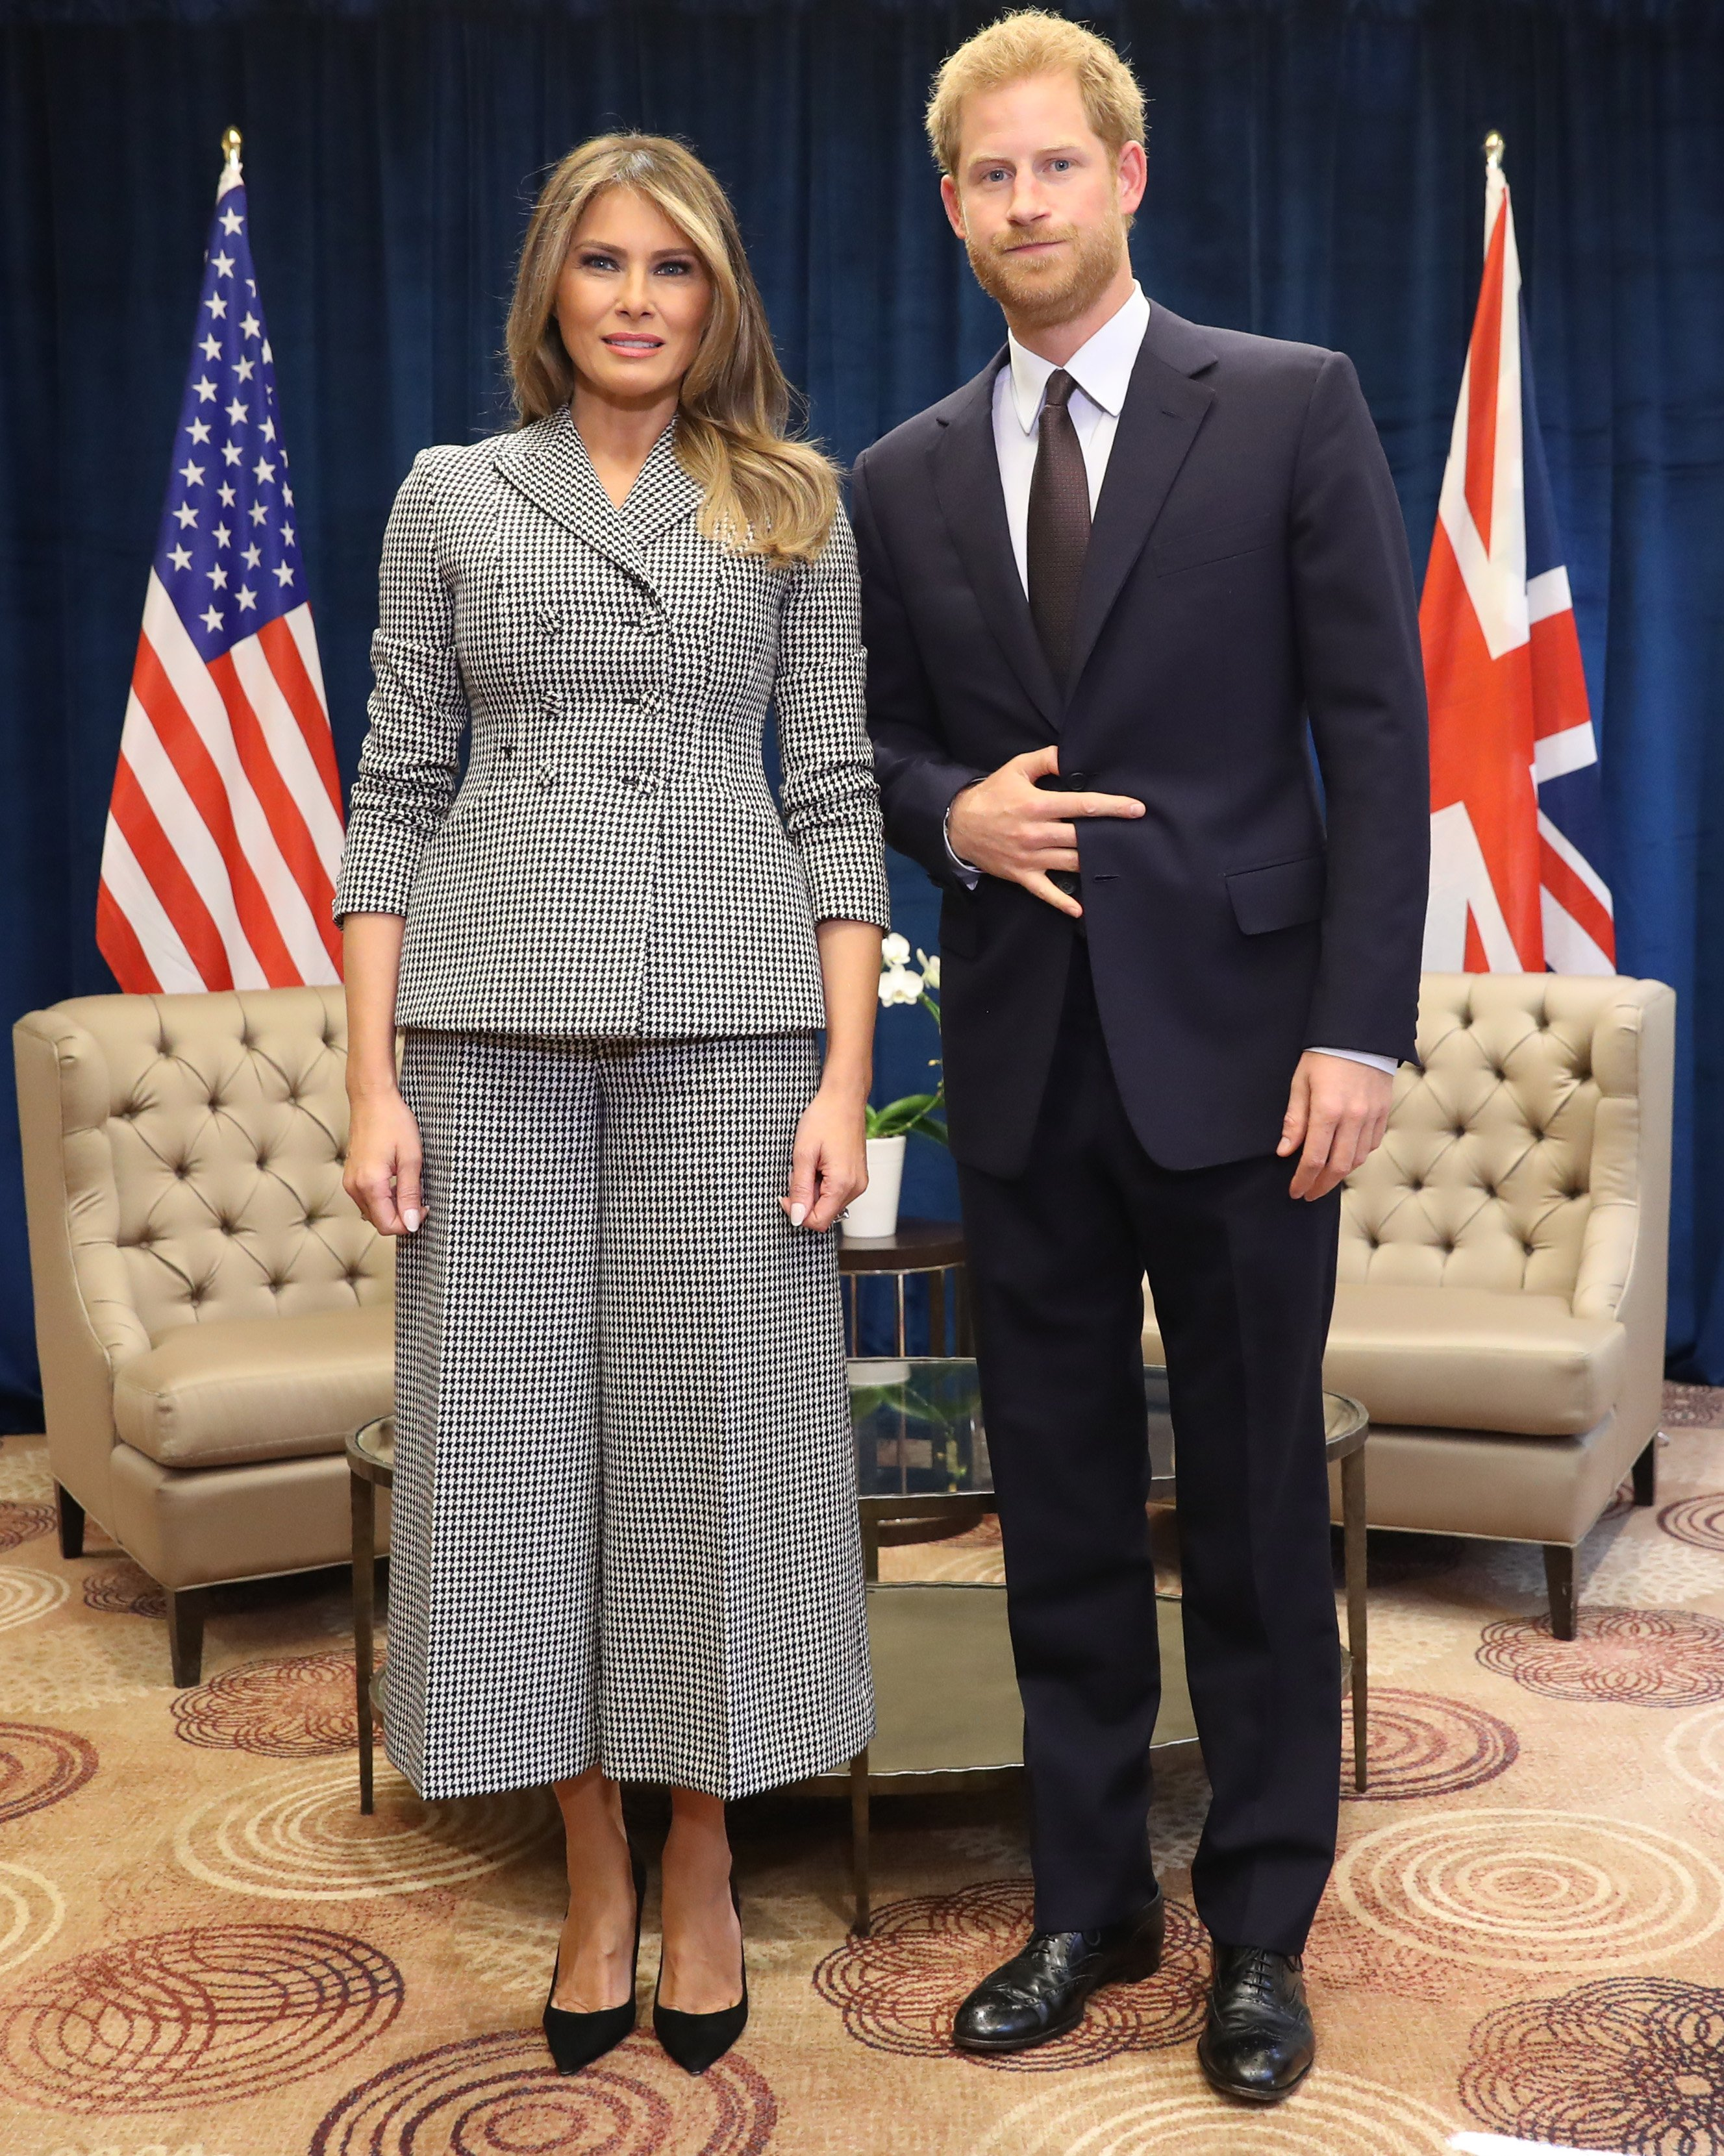 Melania Trump poses with Prince Harry at the Invictus Games in Toronto, Canada on September 23, 2017 | Photo: Getty Images